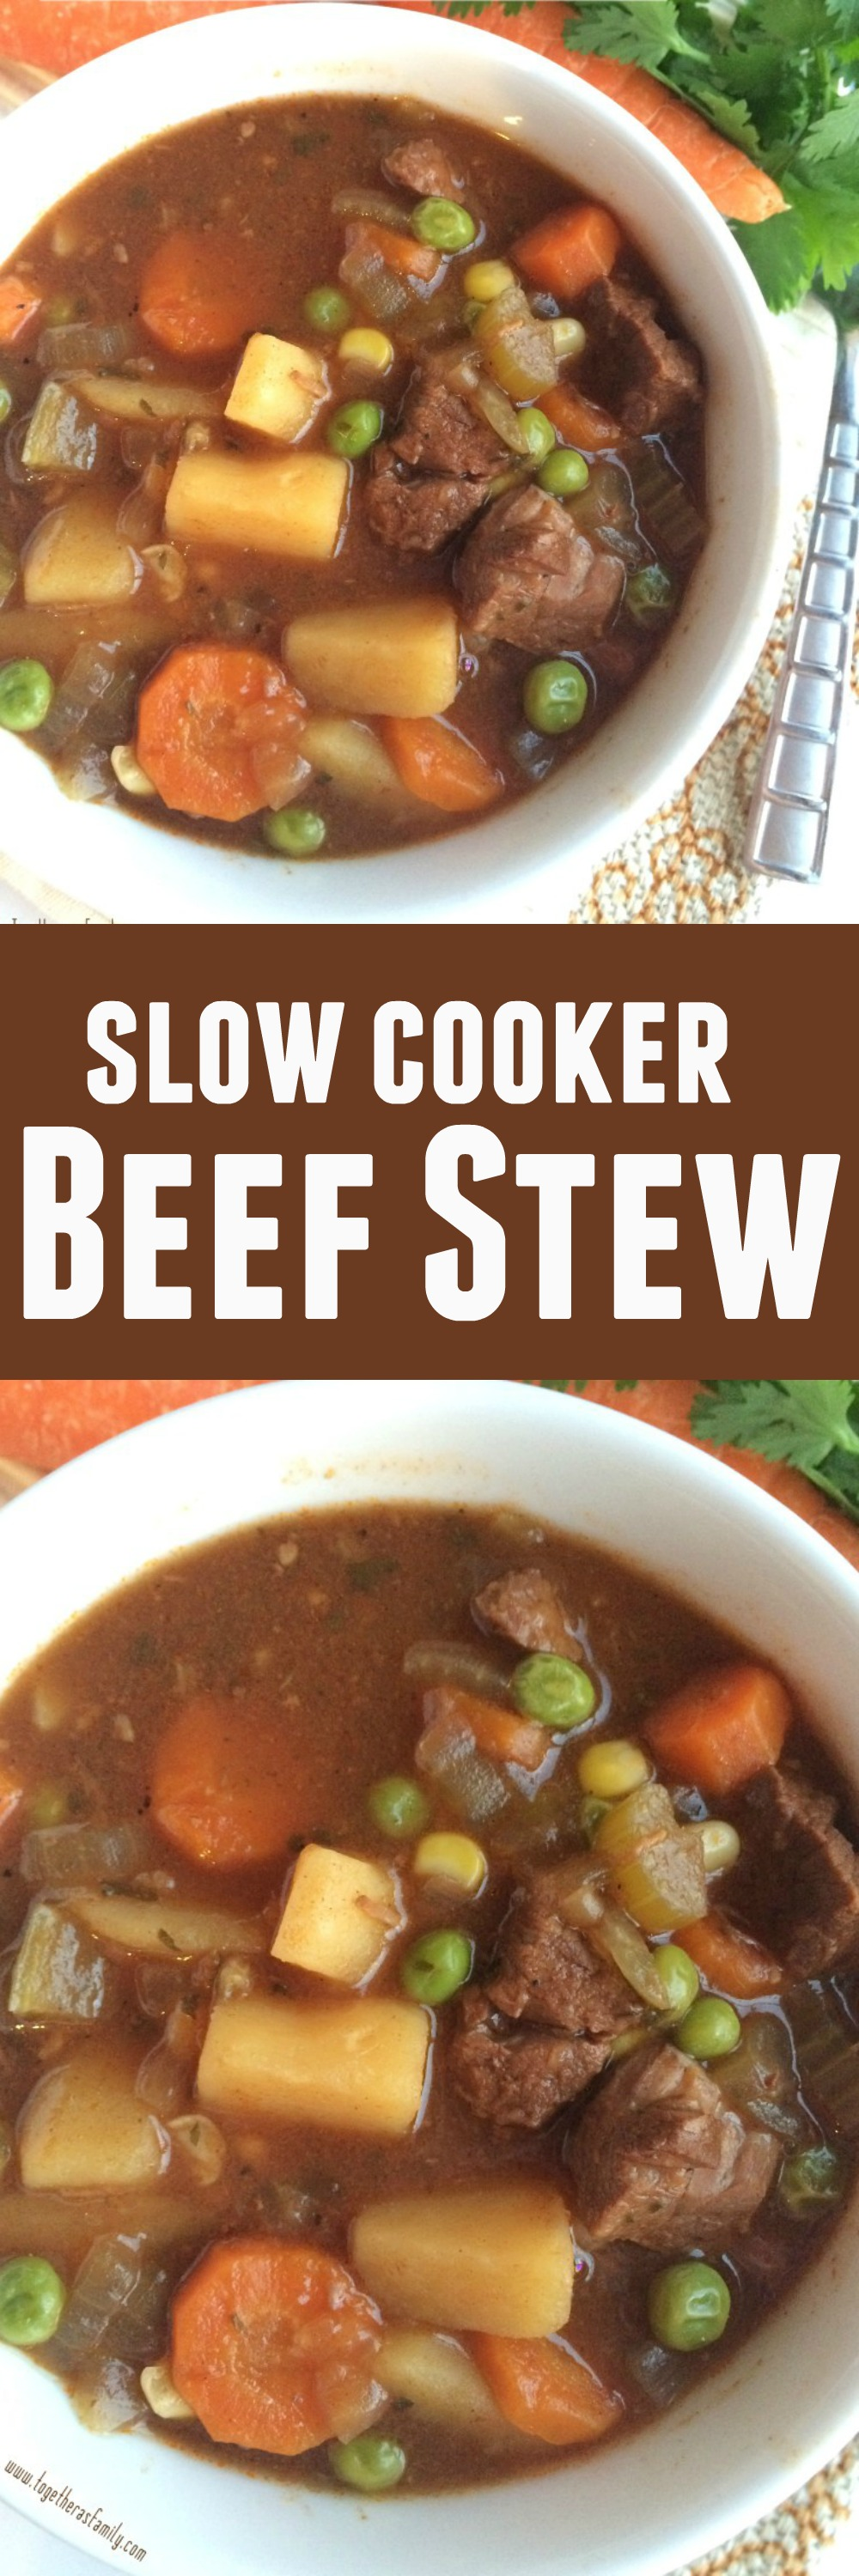 Slow Cooker Beef Stew - Together as Family